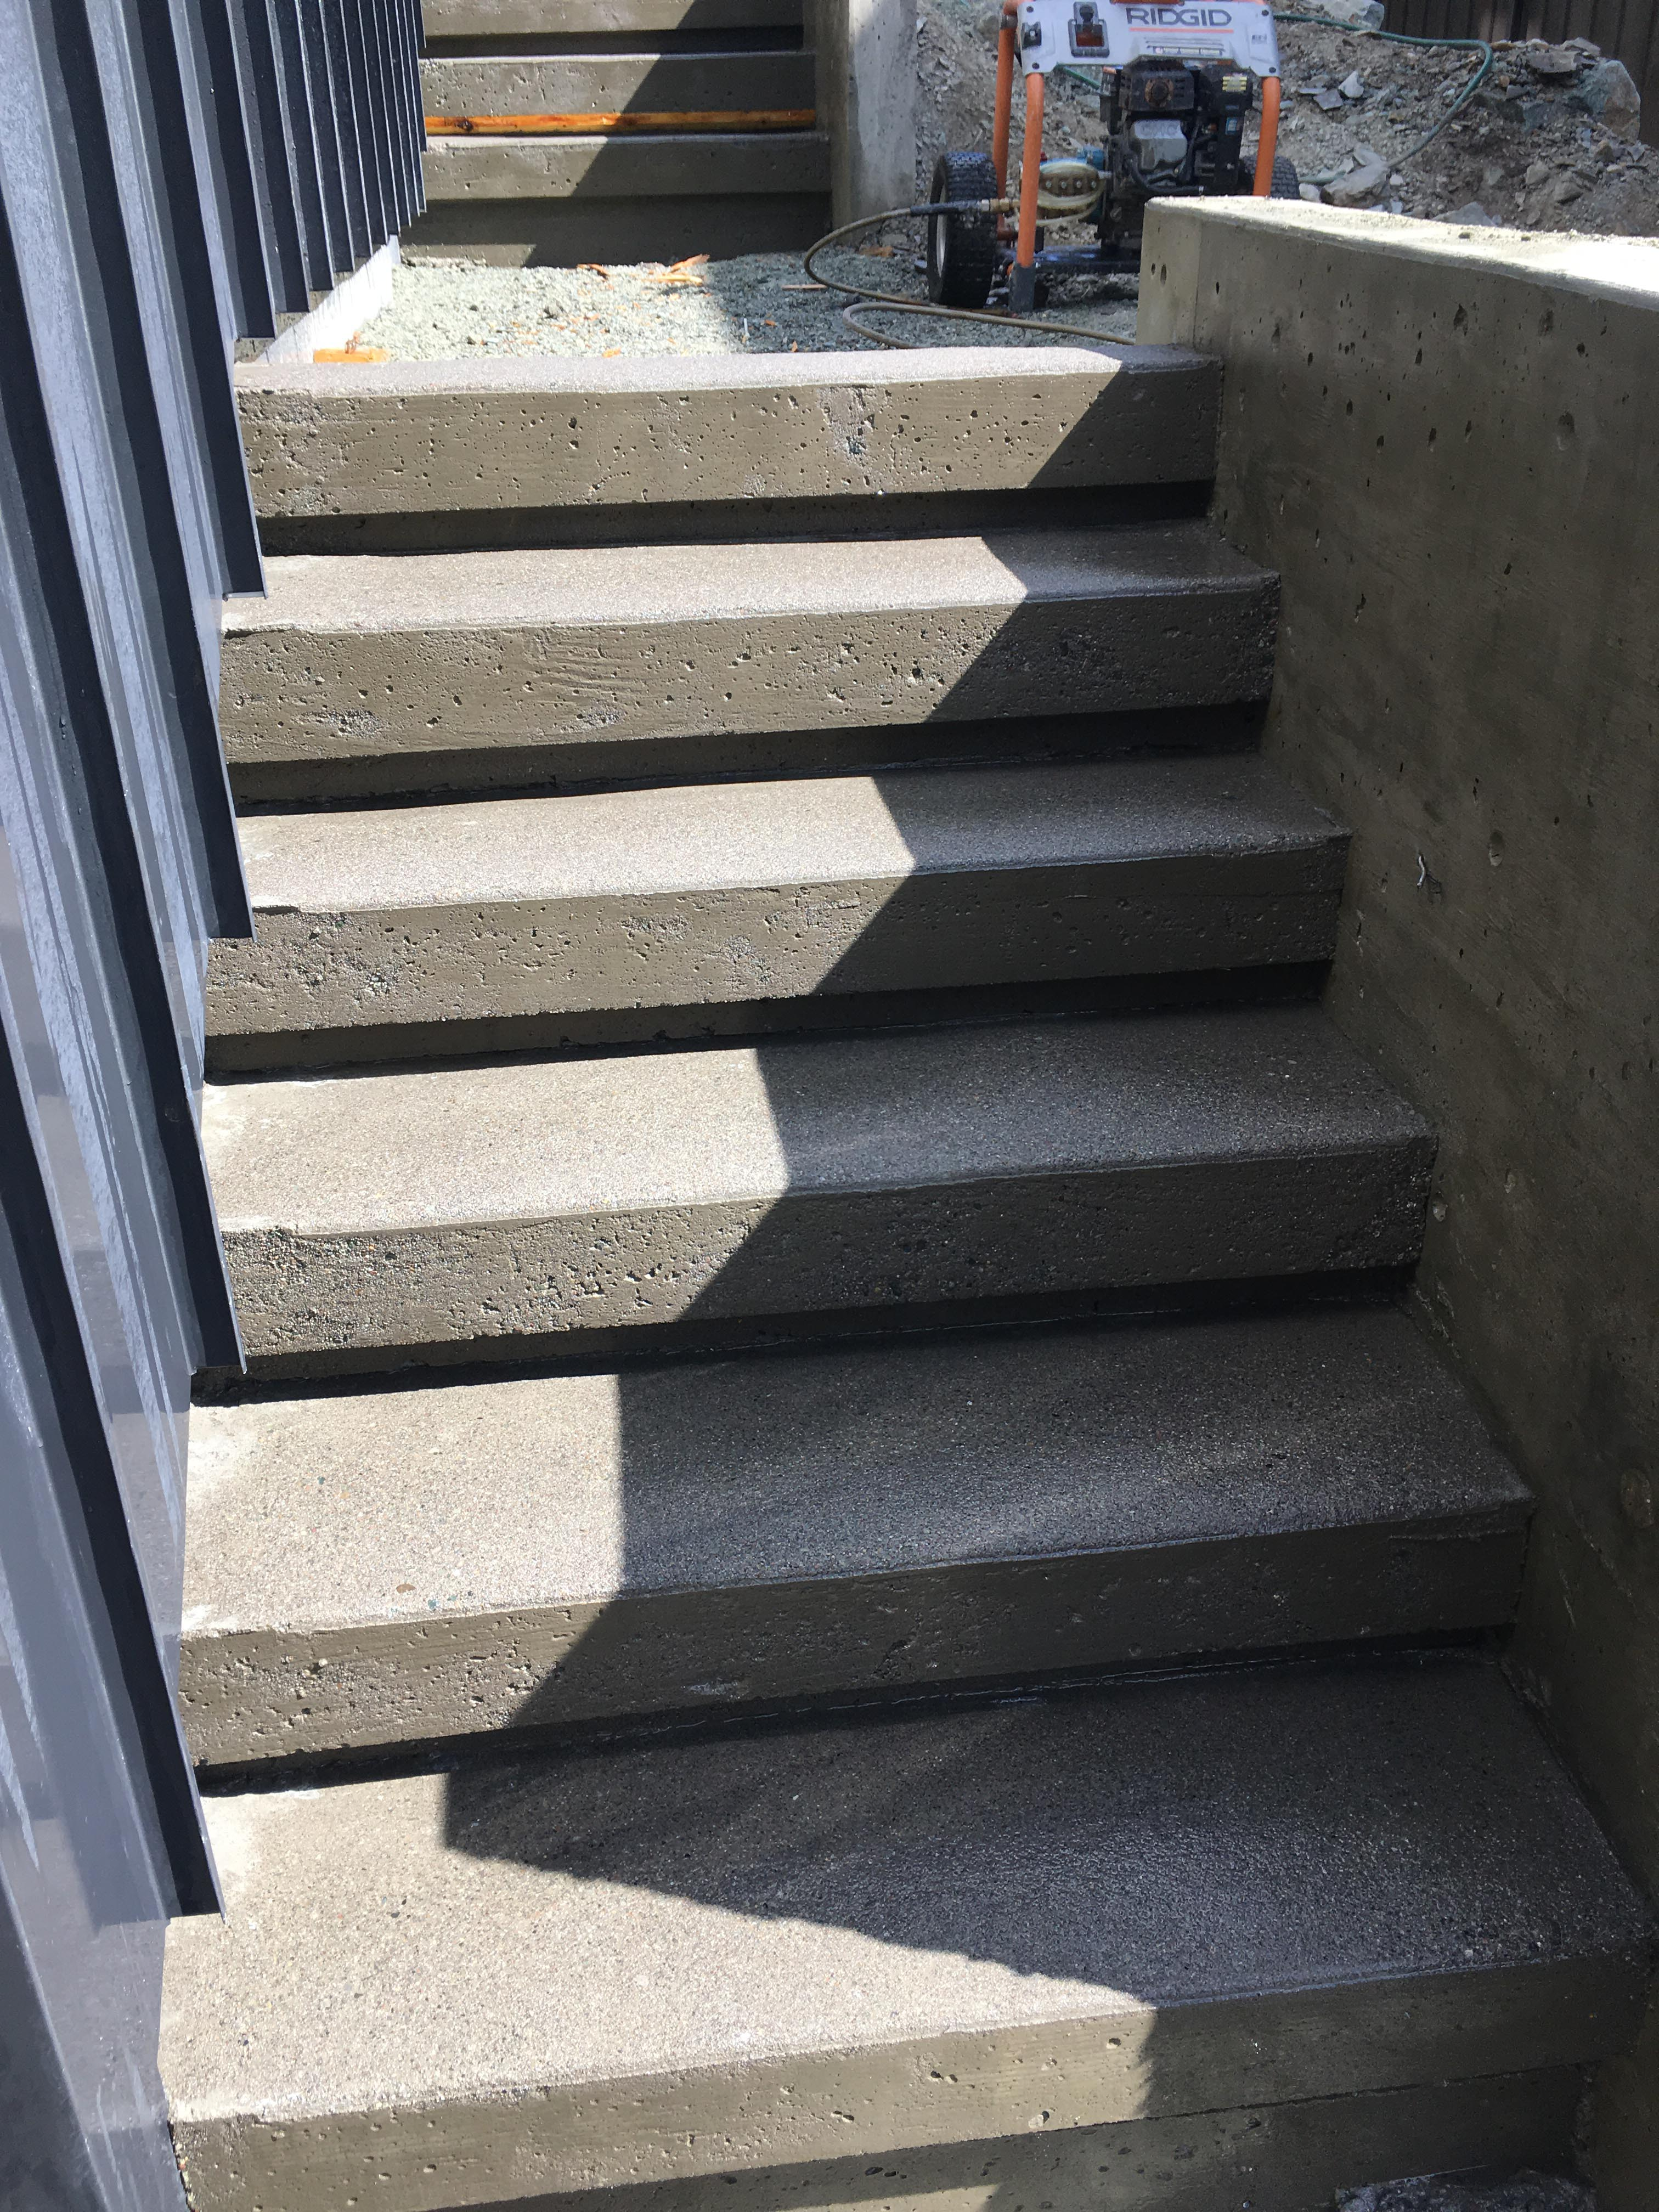 Pound 4 Pound, Framing and Forming. Finished concrete stairs